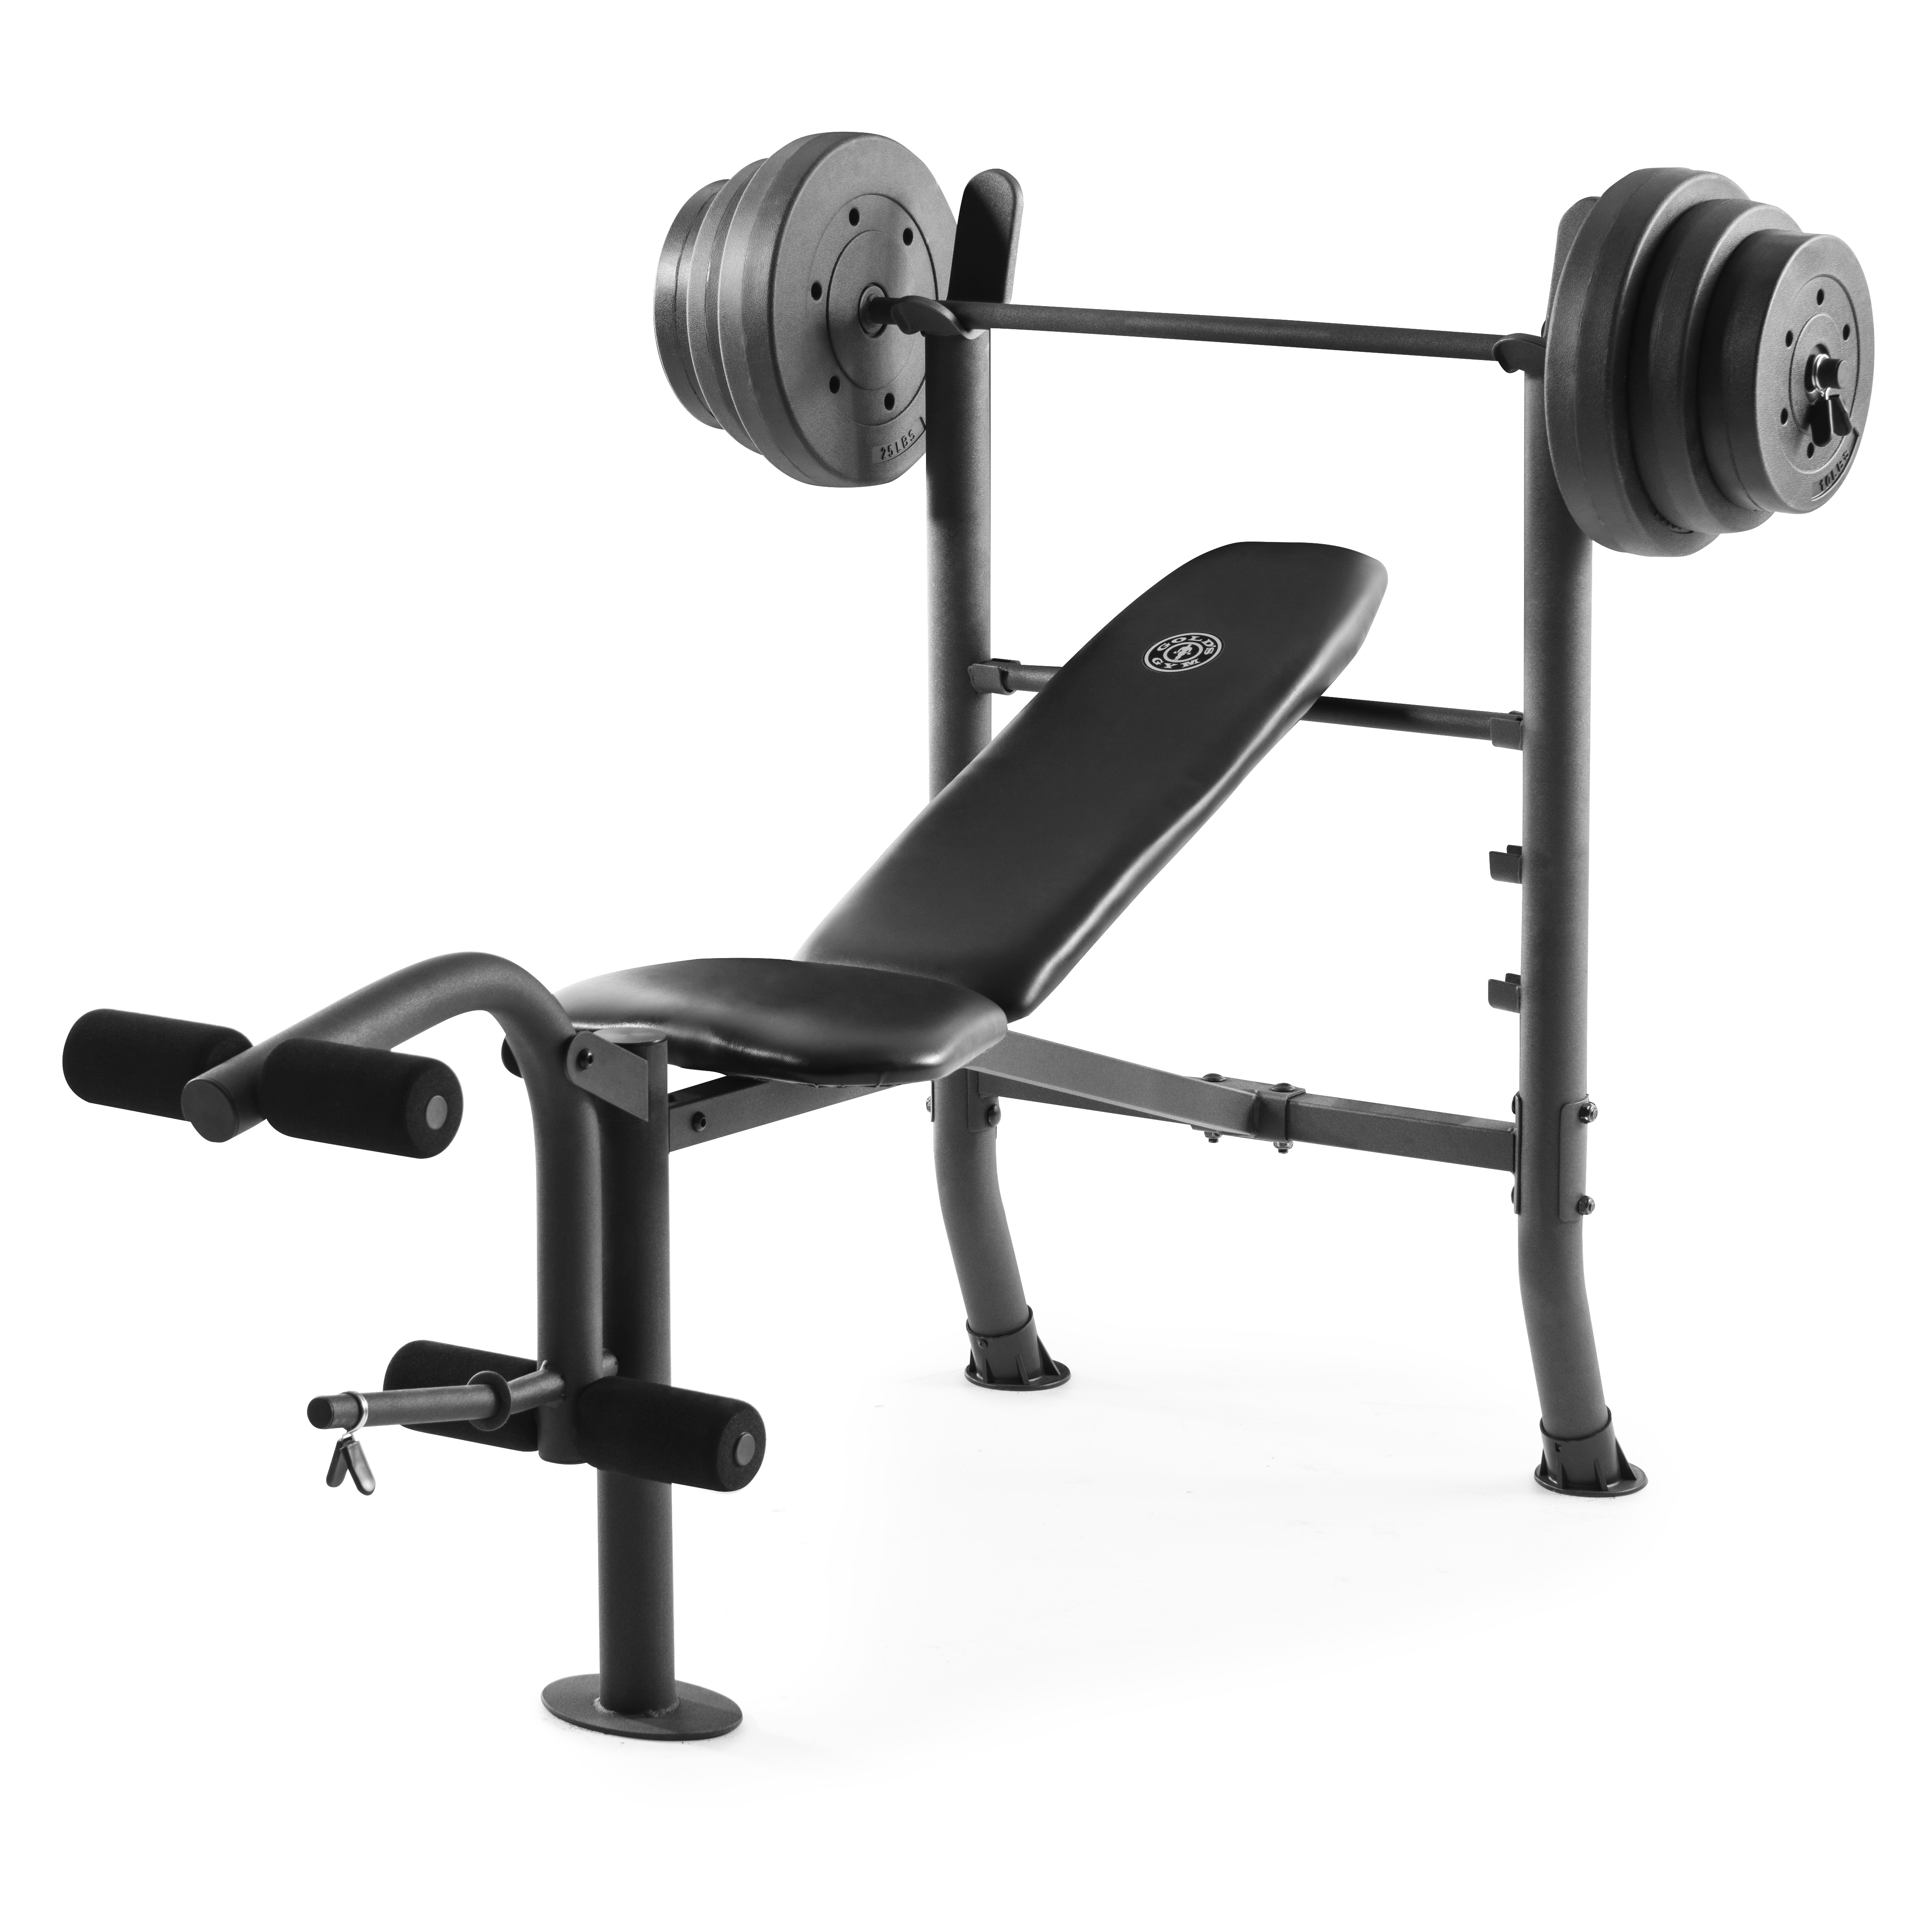 Weight Benches Bench Set For Sale Mesmerizing With Ebay: Gold's Gym XR 8.1 Combo Weight Bench With 100 Lb. Vinyl